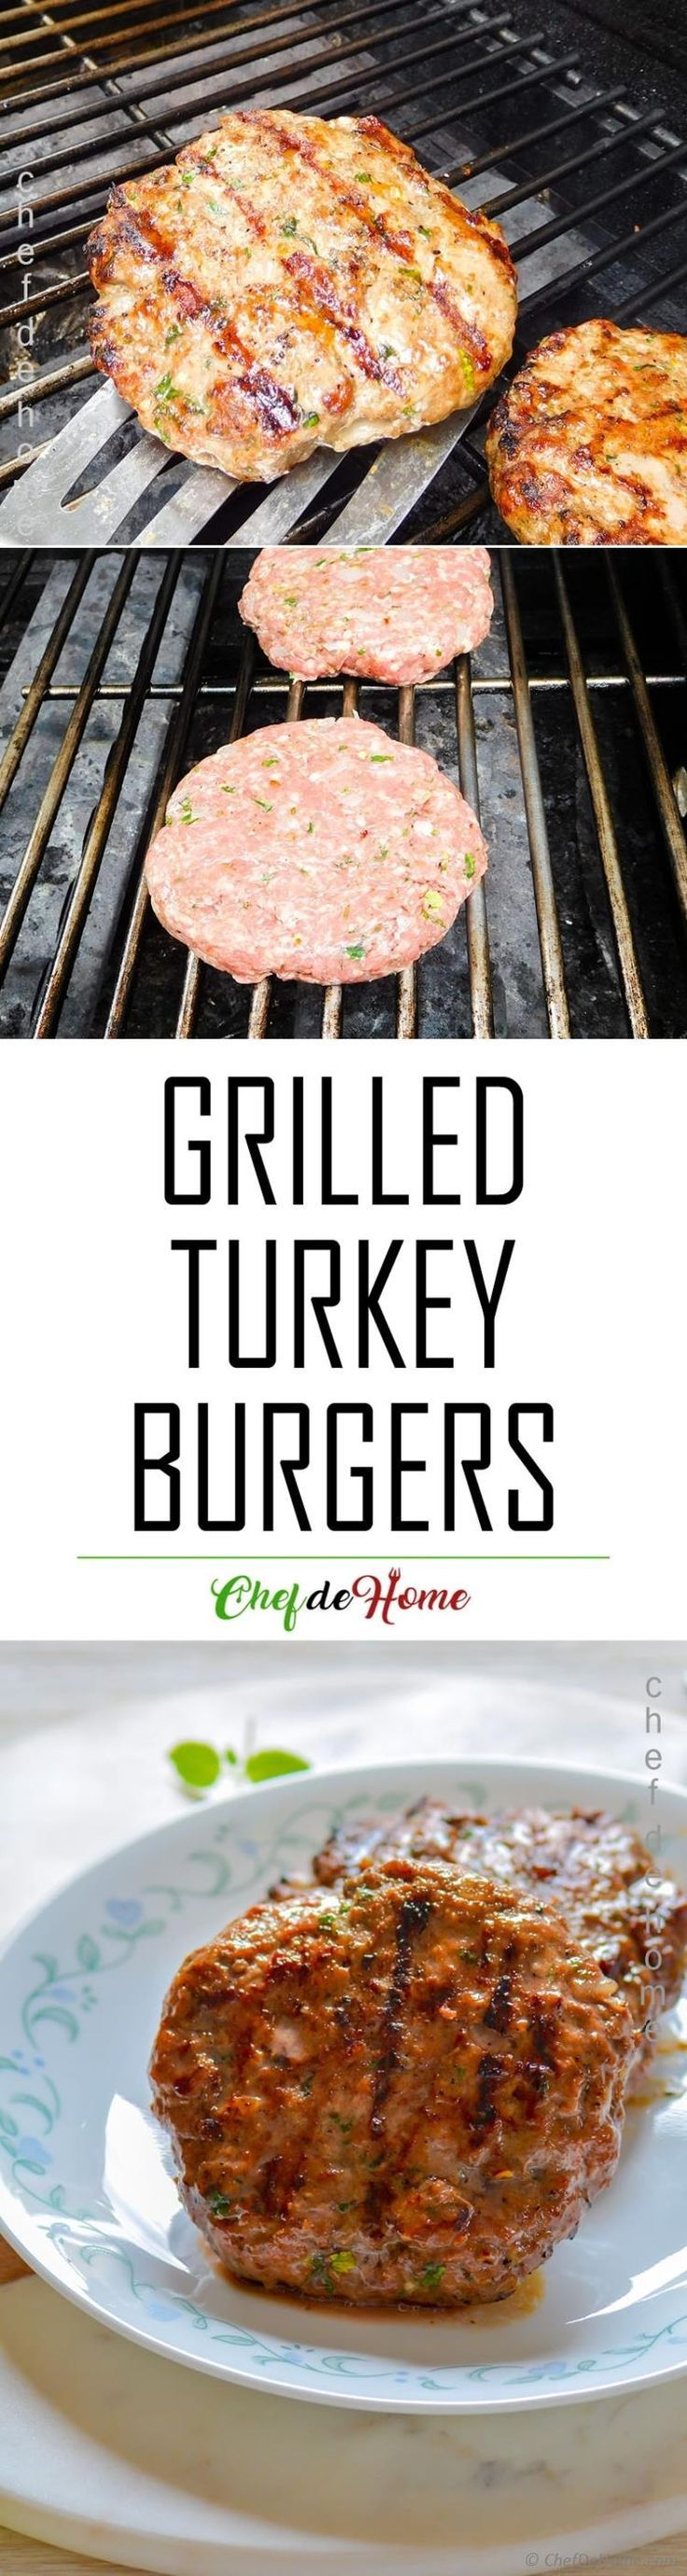 How to make Grilled Turkey Burgers